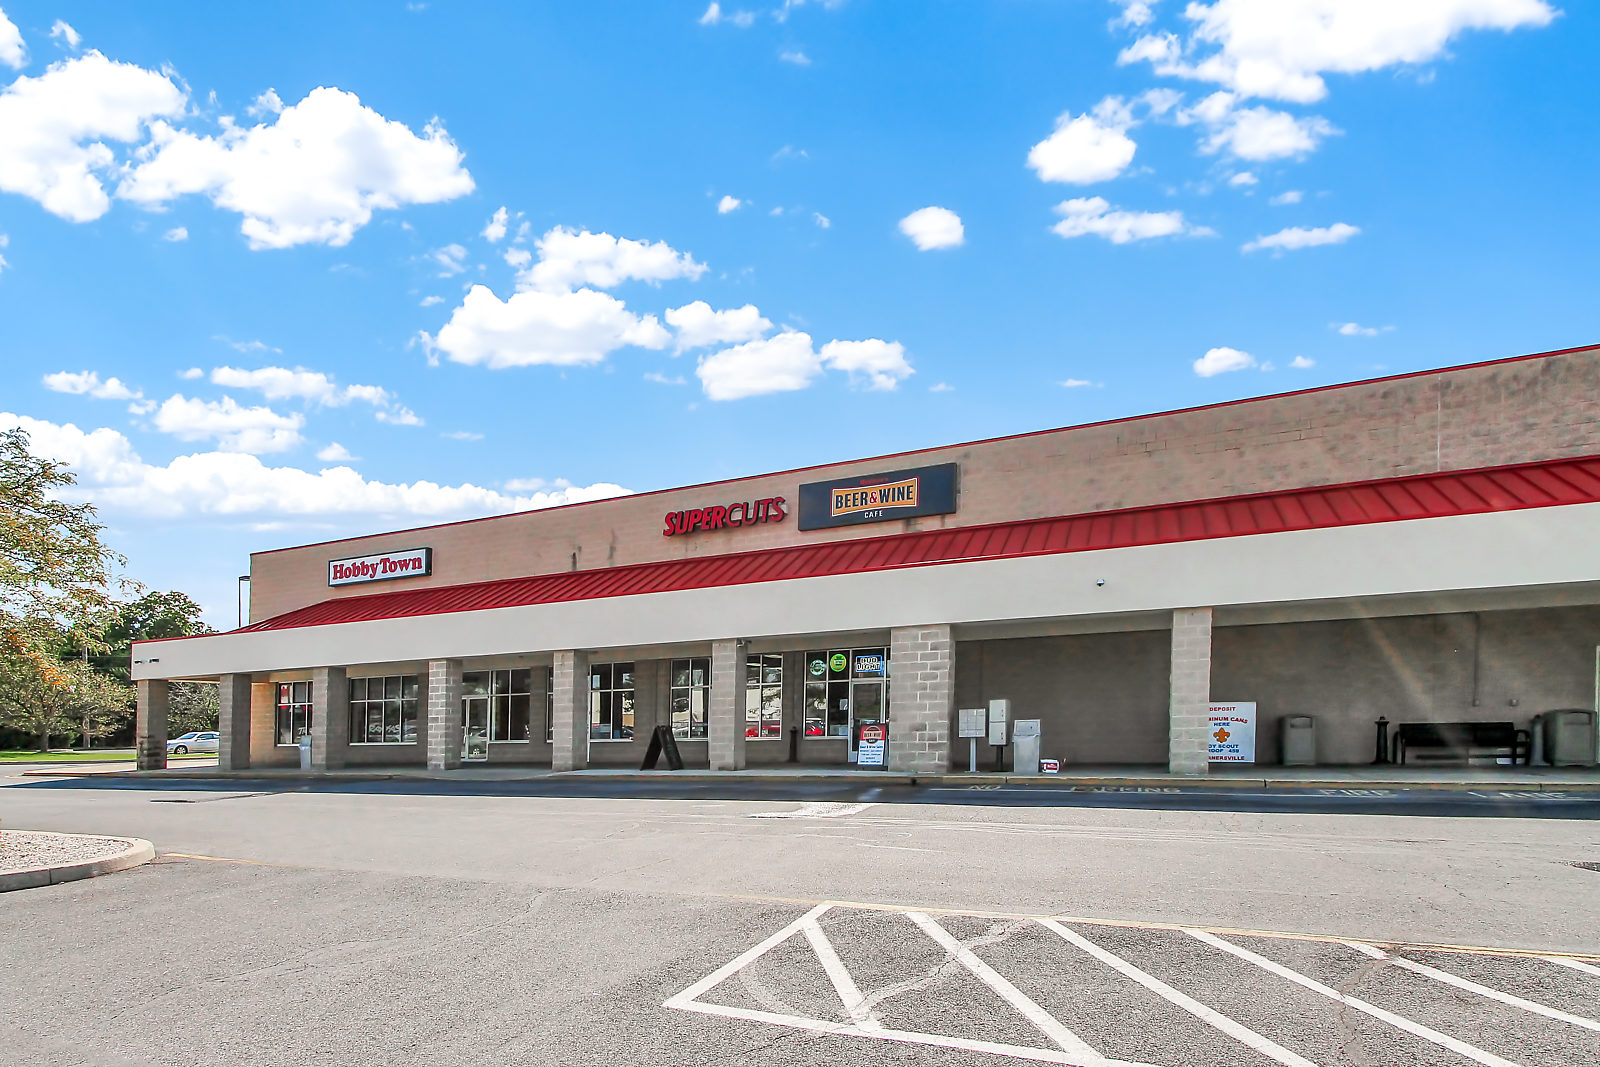 Retail space available for lease at 4864 E Penn Ave Sinking Spring PA. Contact Kent Wrobel today to discuss this retail leasing opportunity.